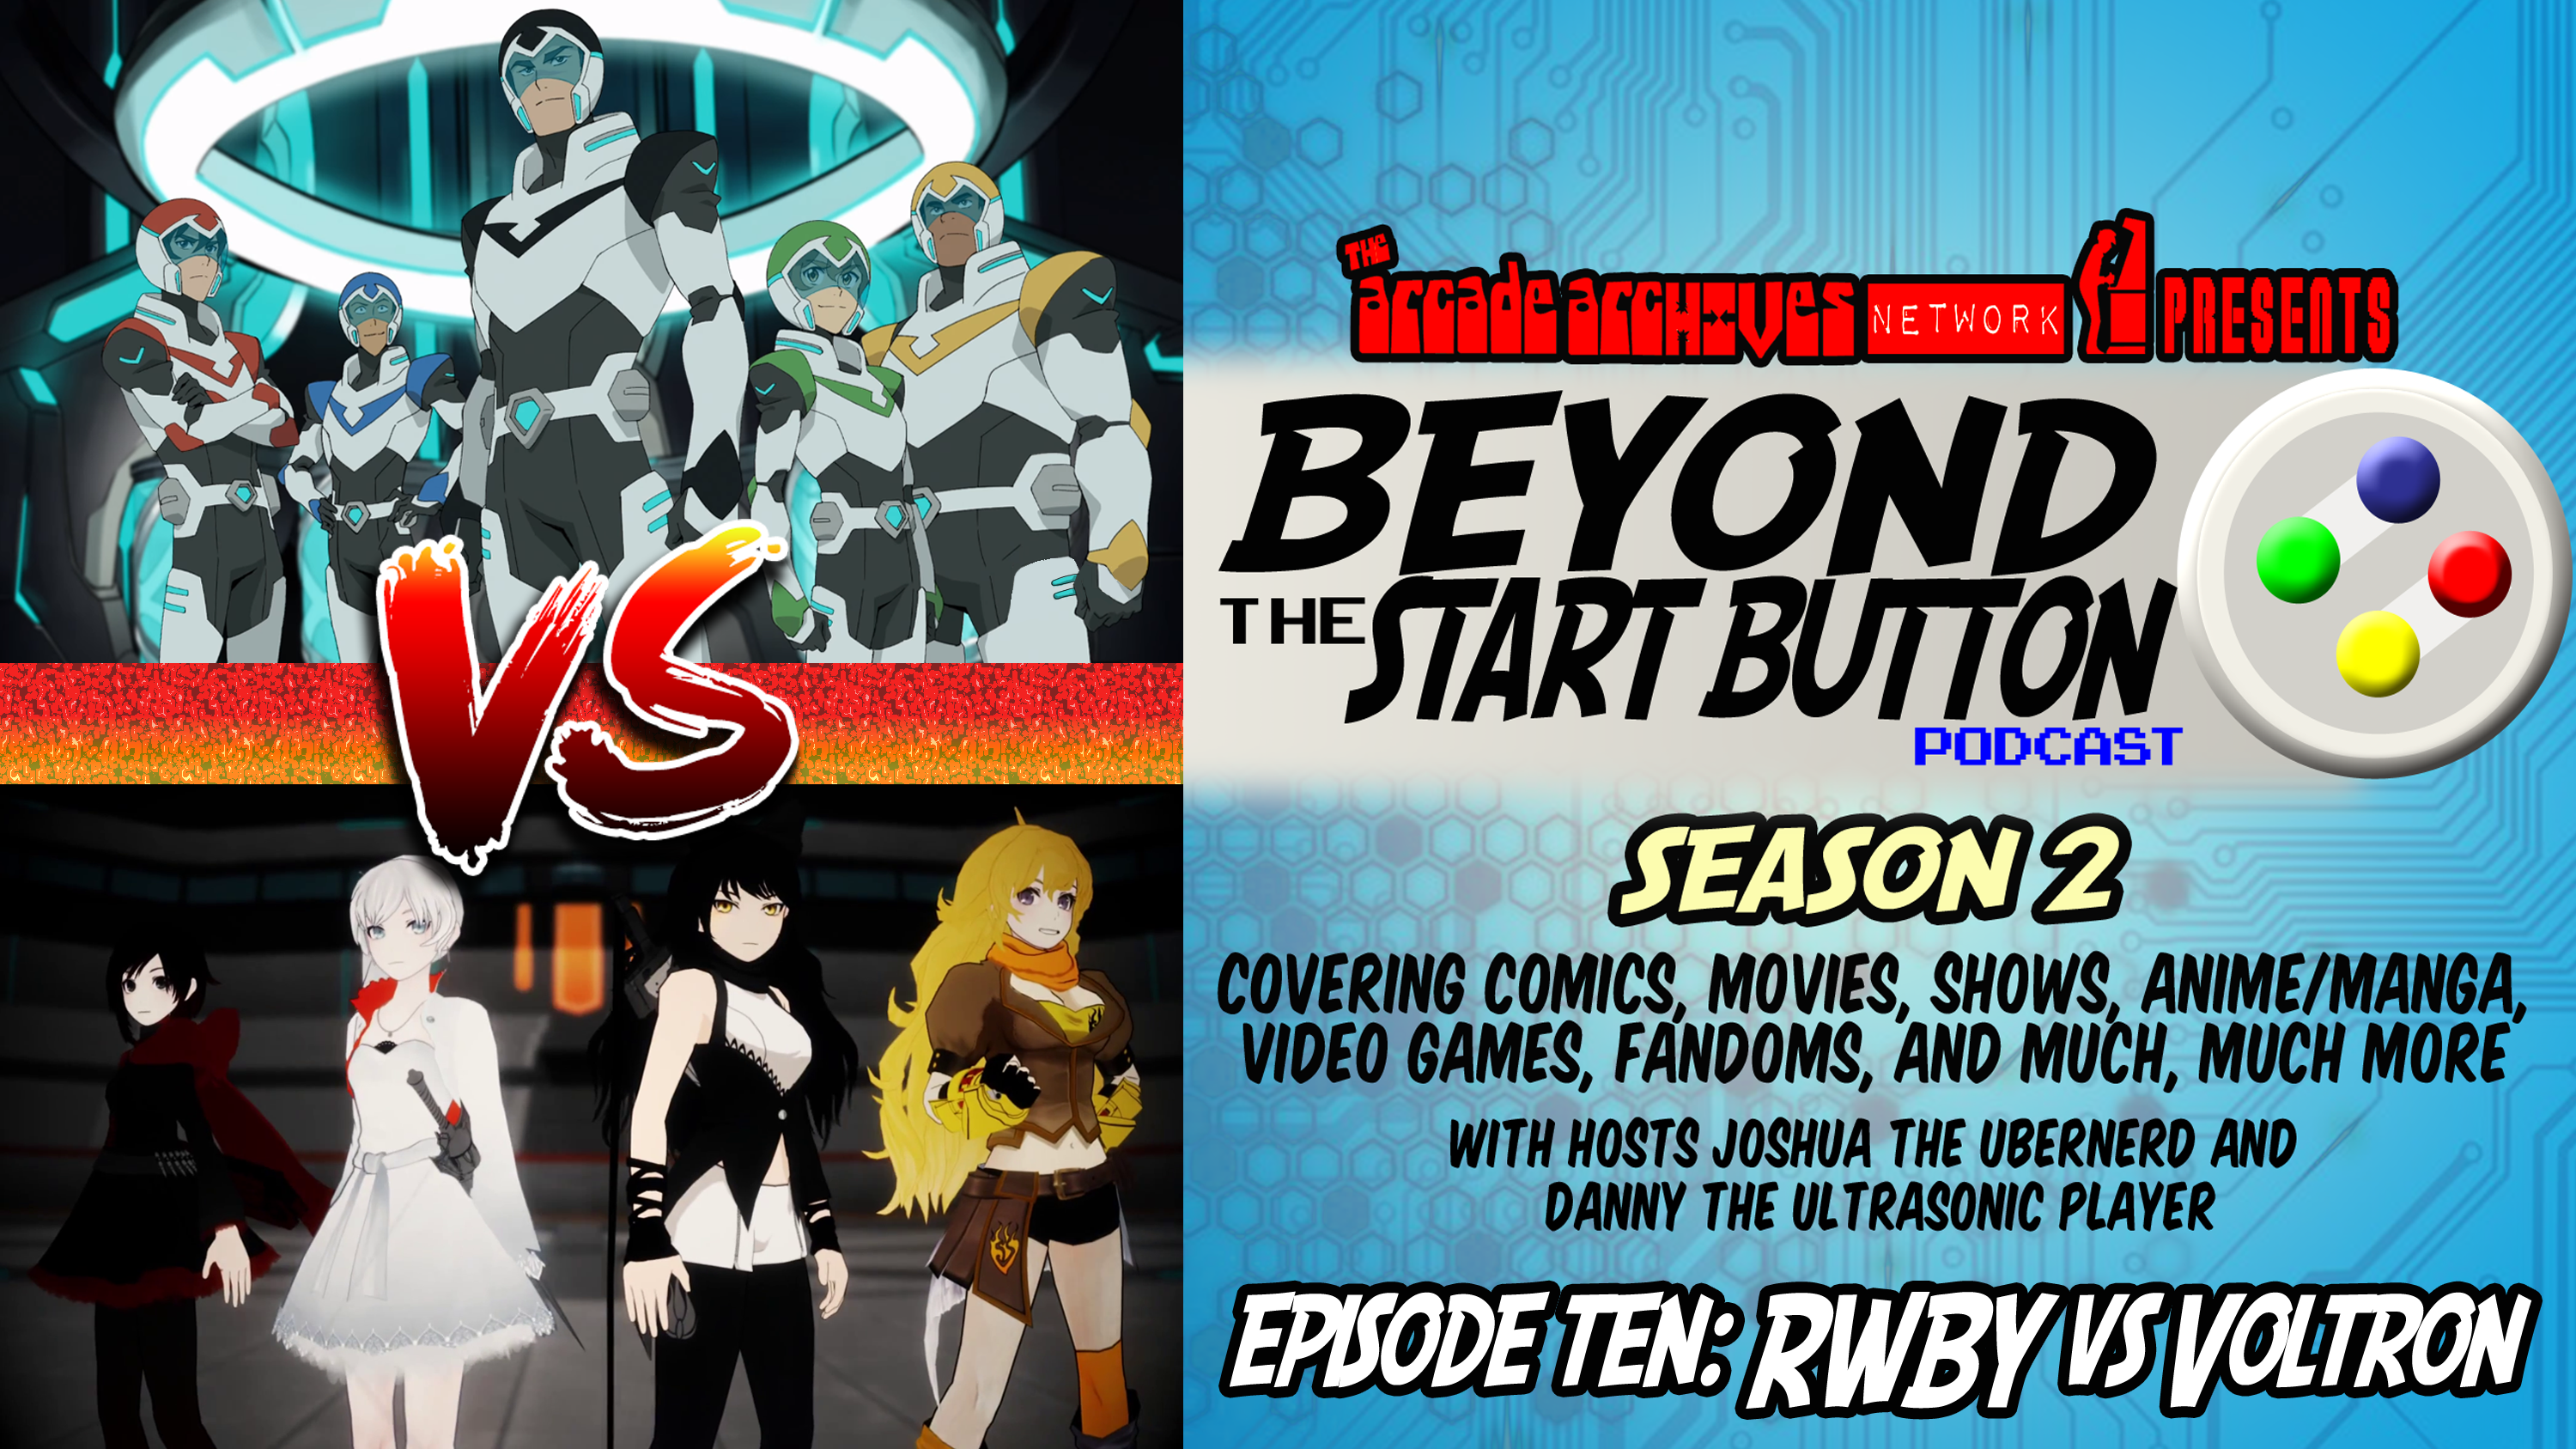 Episode 10: RWBY vs Voltron – Beyond the Start Button Podcast Season